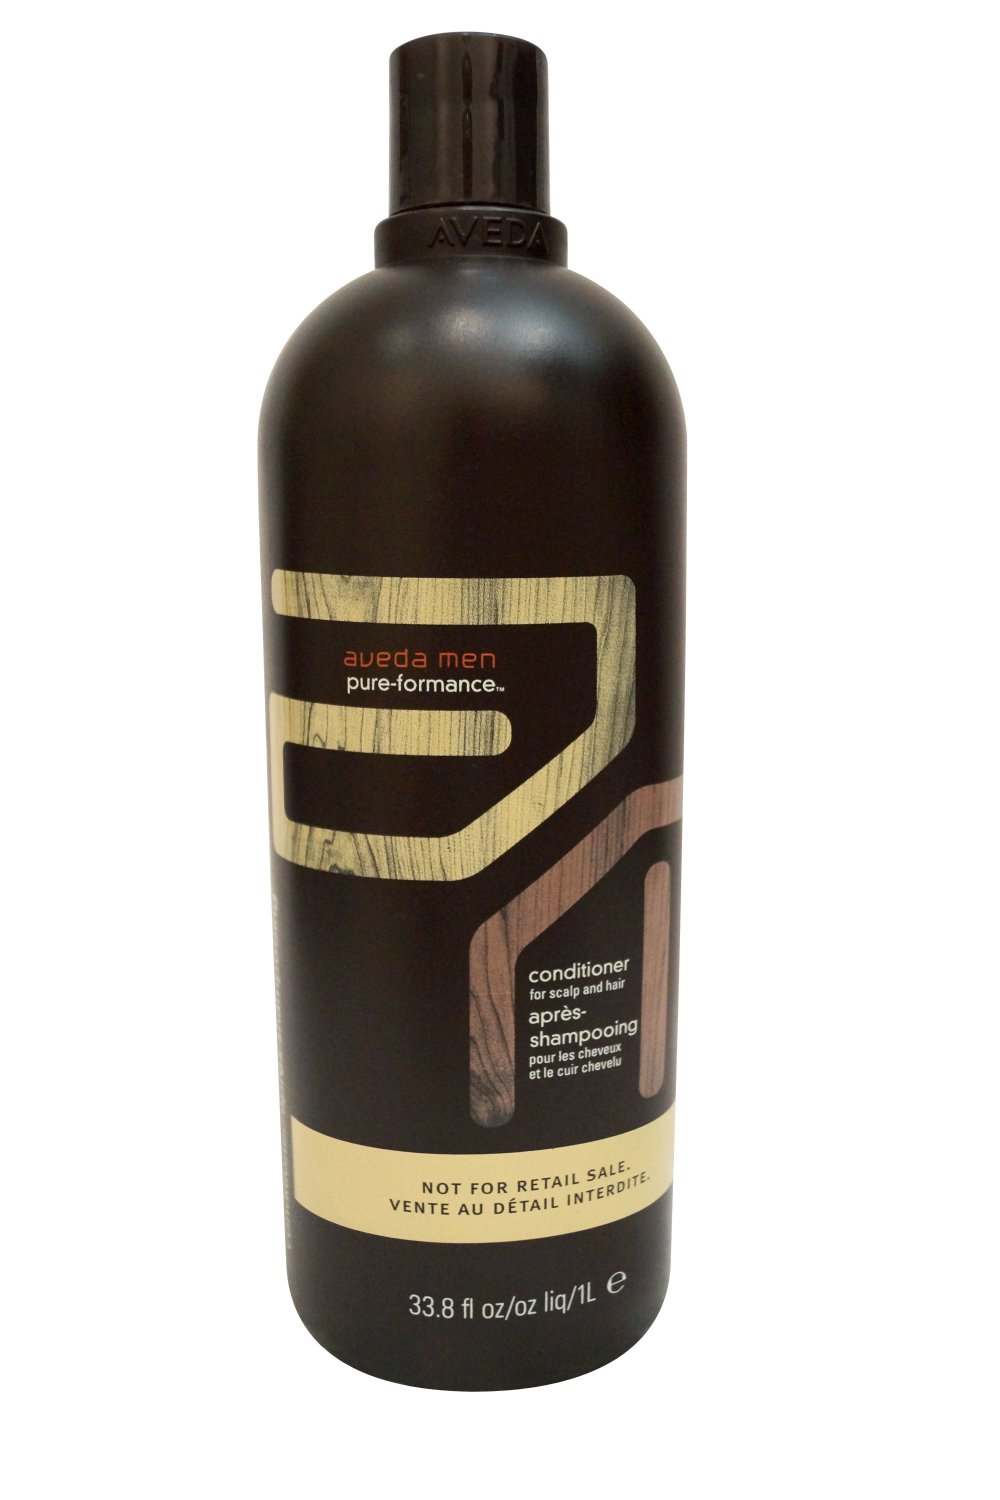 Aveda Men Pure-formance Conditioner 33.8 oz